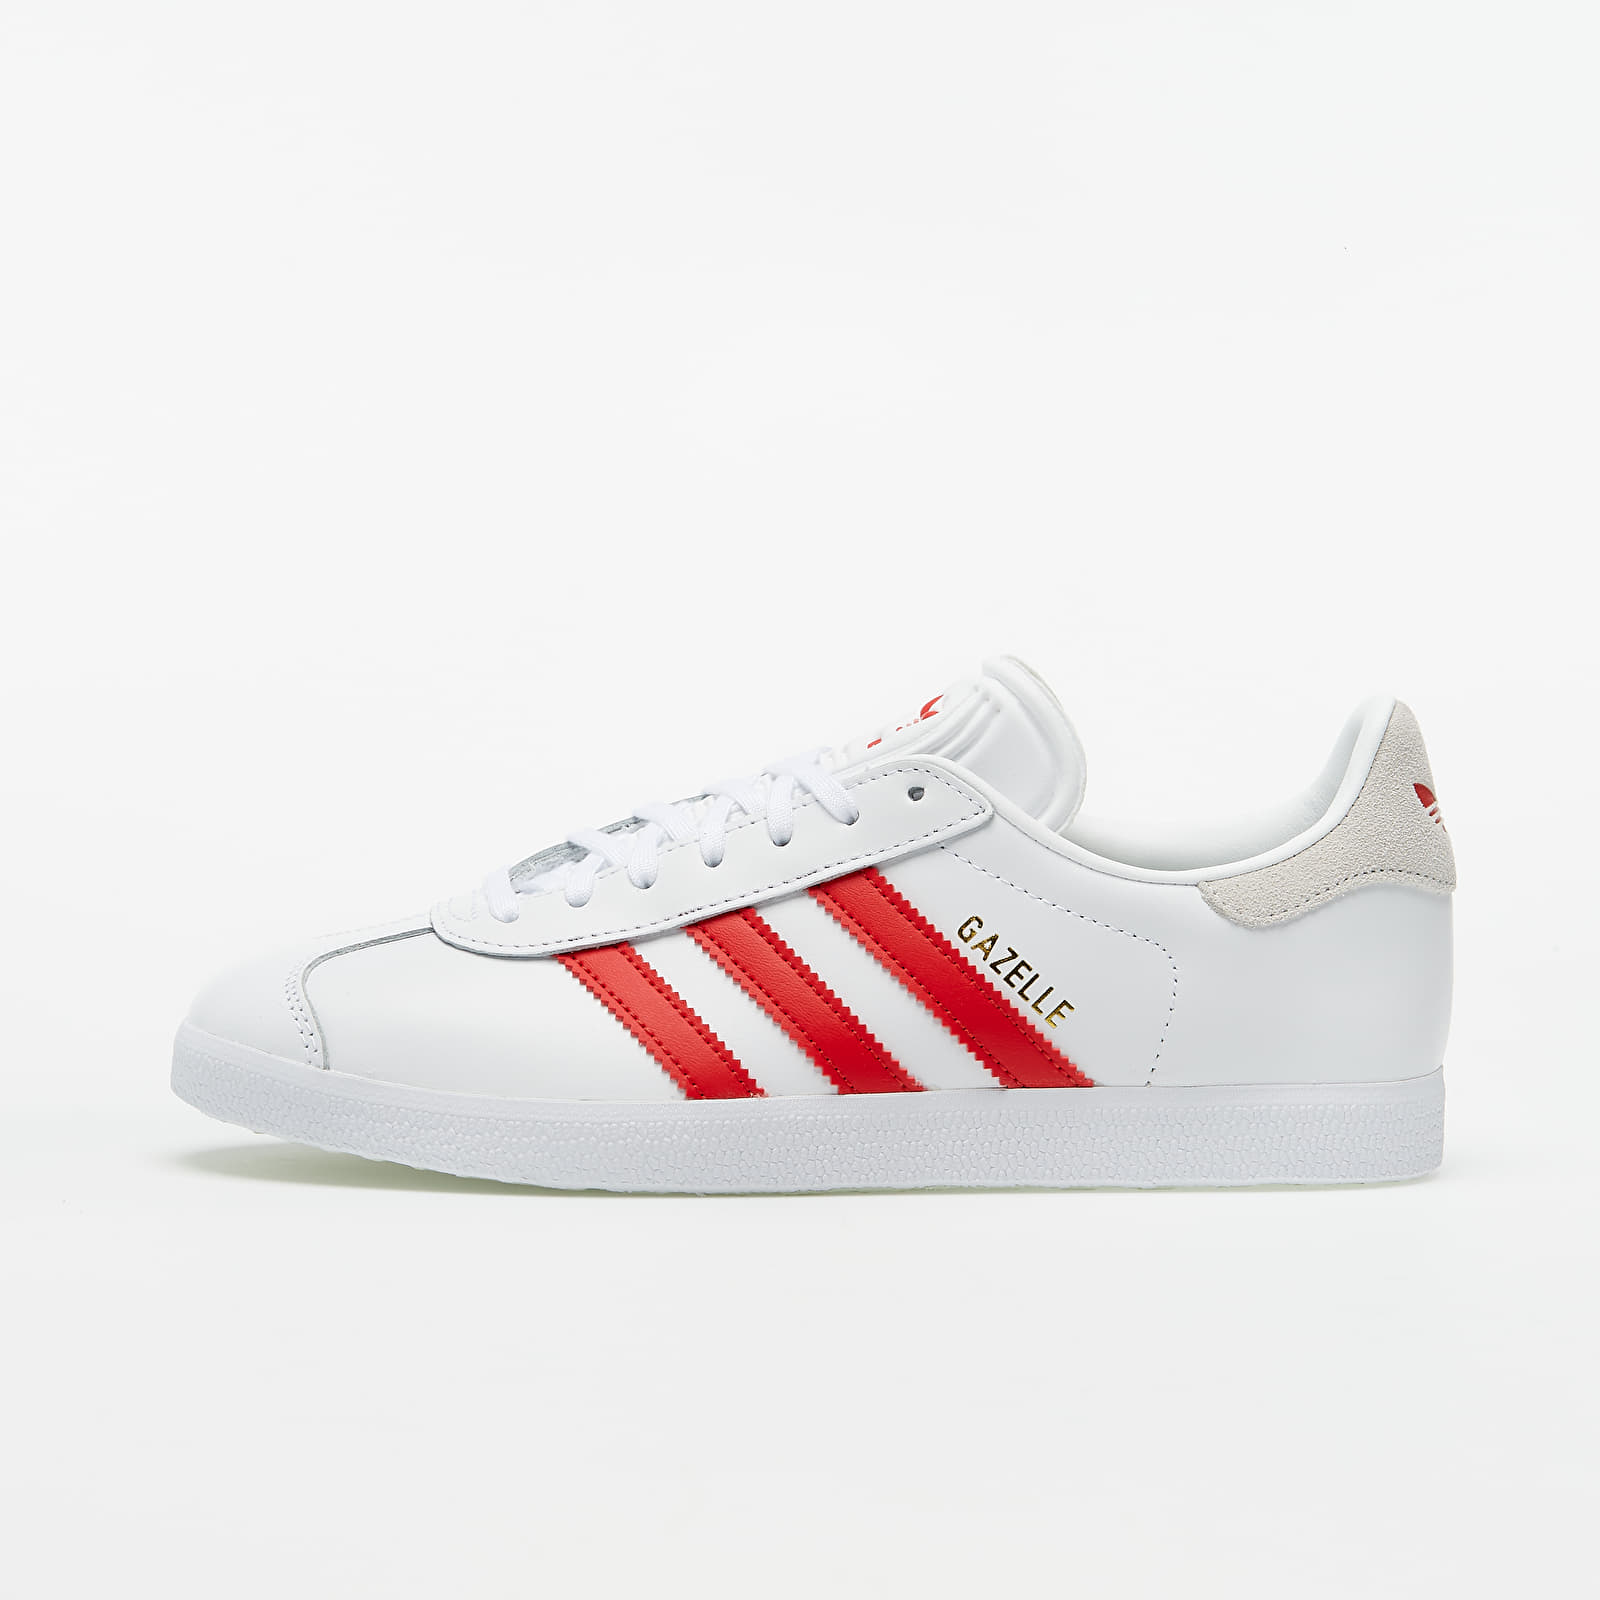 adidas Gazelle W Ftw White/ Lust Red/ Crystal White EUR 38 2/3